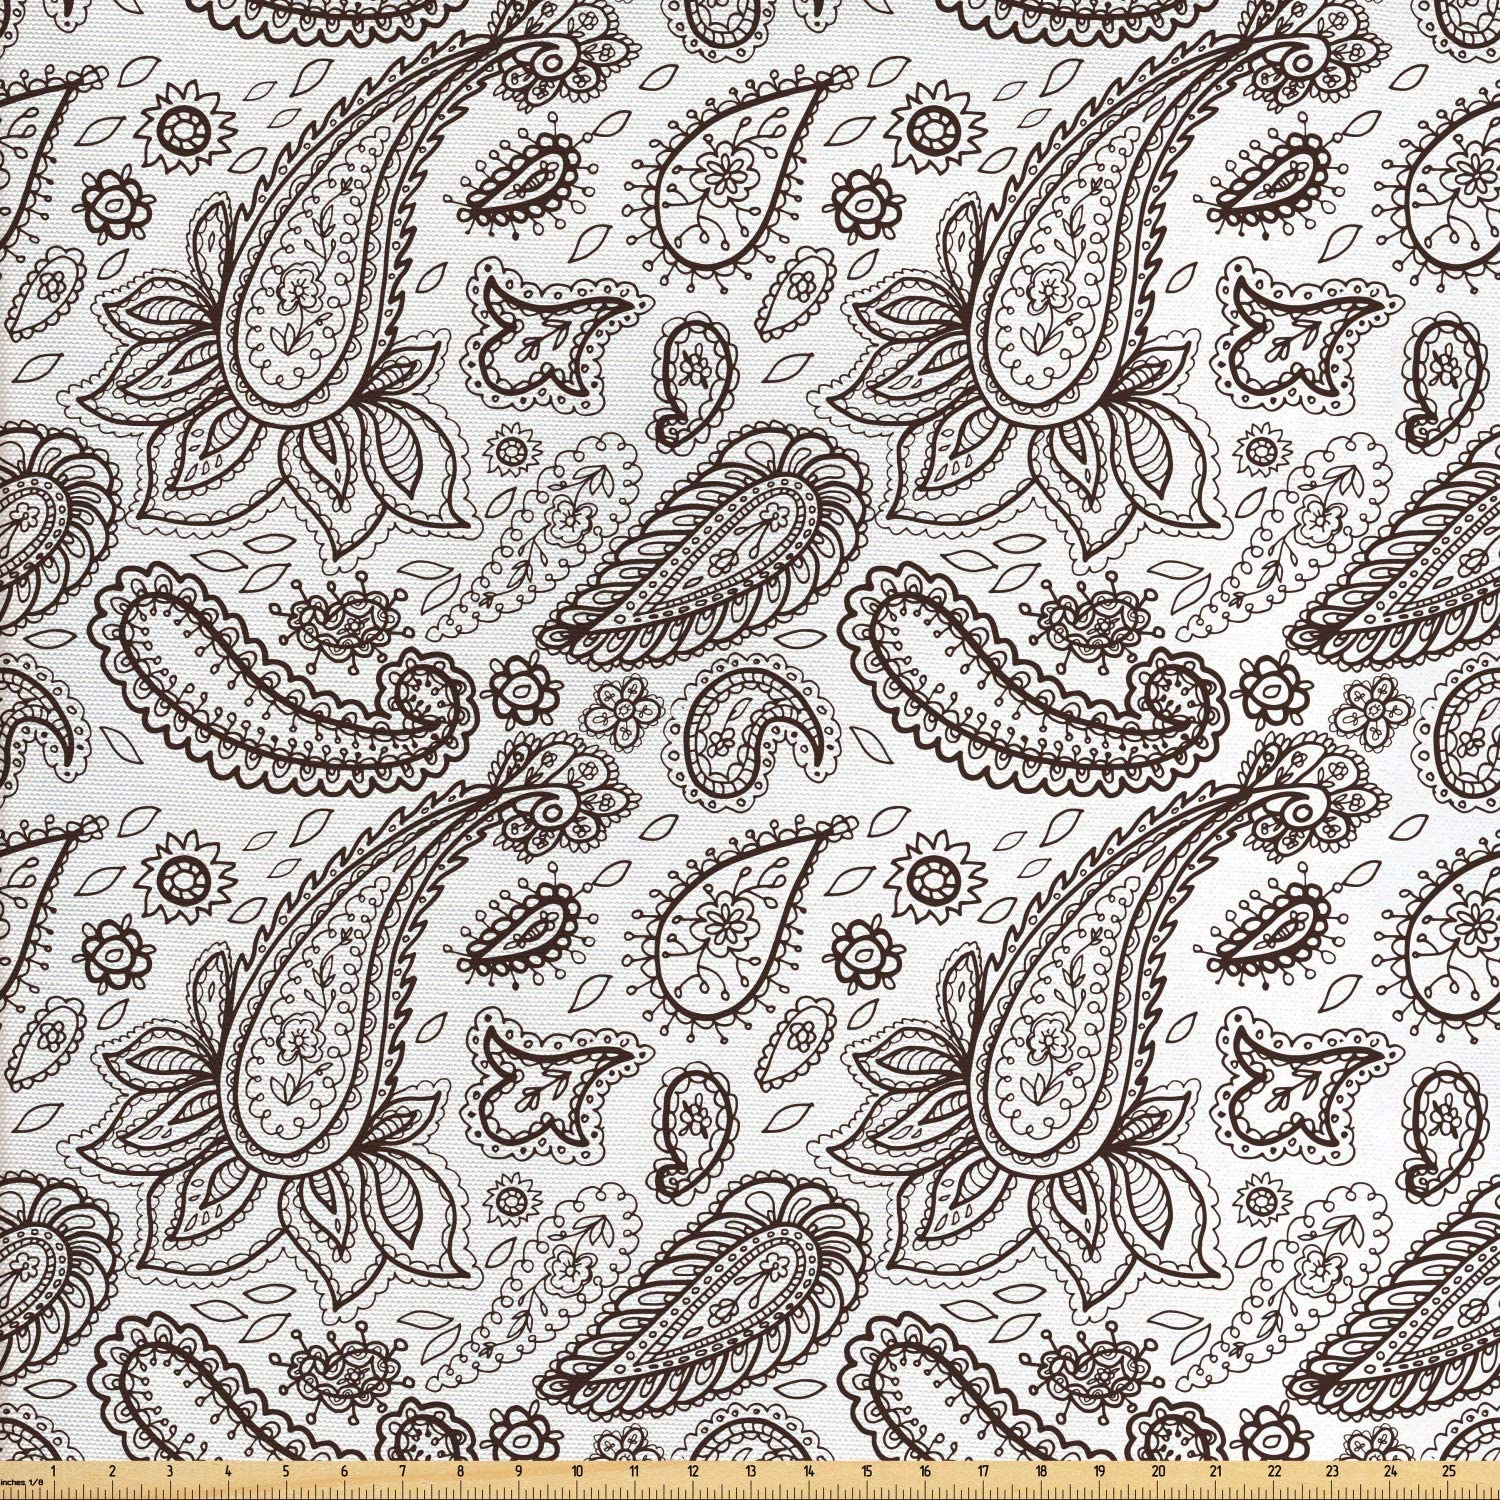 Ambesonne Brown Paisley Fabric by The Yard, Classical Almond Like Shape Zentangle Look Fashion Print on Plain Background, Decorative Fabric for Upholstery and Home Accents, 1 Yard, Brown White